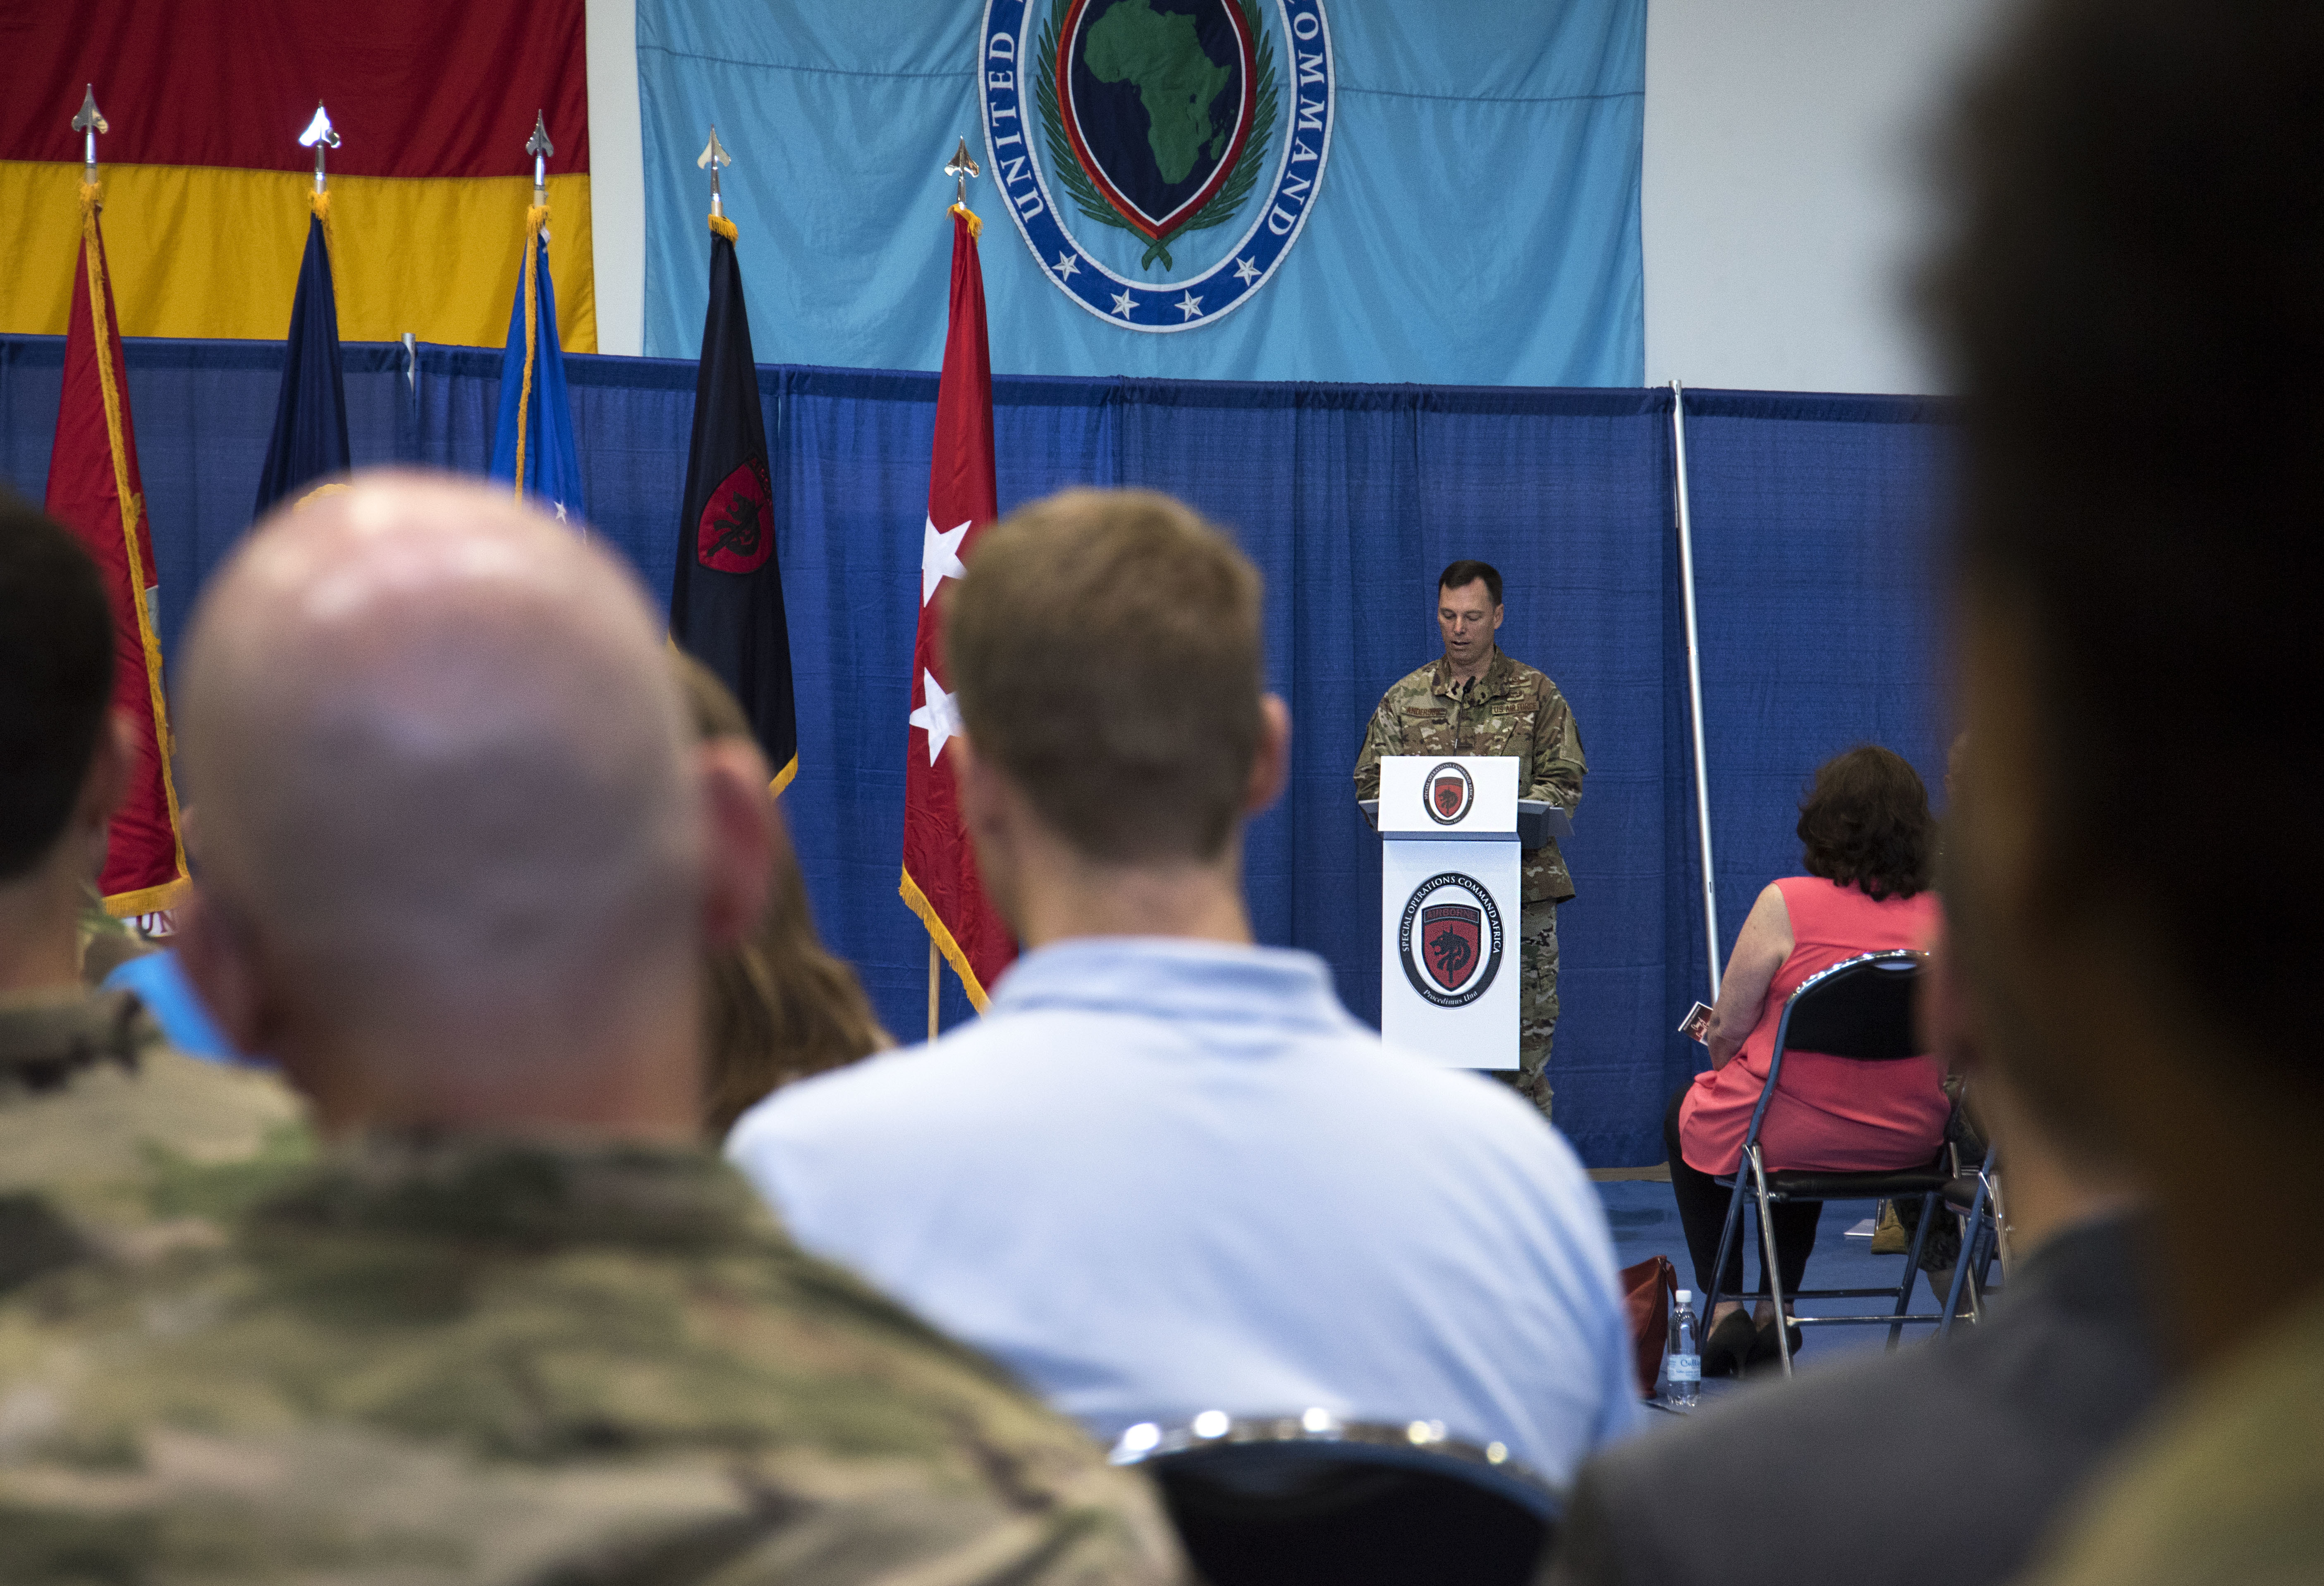 U.S. Air Force Brig. Gen. Dagvin R.M. Anderson, incoming commander of Special Operations Command Africa, speaks during a change of command ceremony for SOCAFRICA at Kelley Barracks, Stuttgart, Germany, June 28, 2019. Special Operations Command Africa supports U.S. Africa Command by counter violent extremist organizations, building the military capacity of key partners in Africa and protecting U.S. personnel and facilities. (U.S. Navy photo by Mass Communication Specialist 1st Class Christopher Hurd/Released)